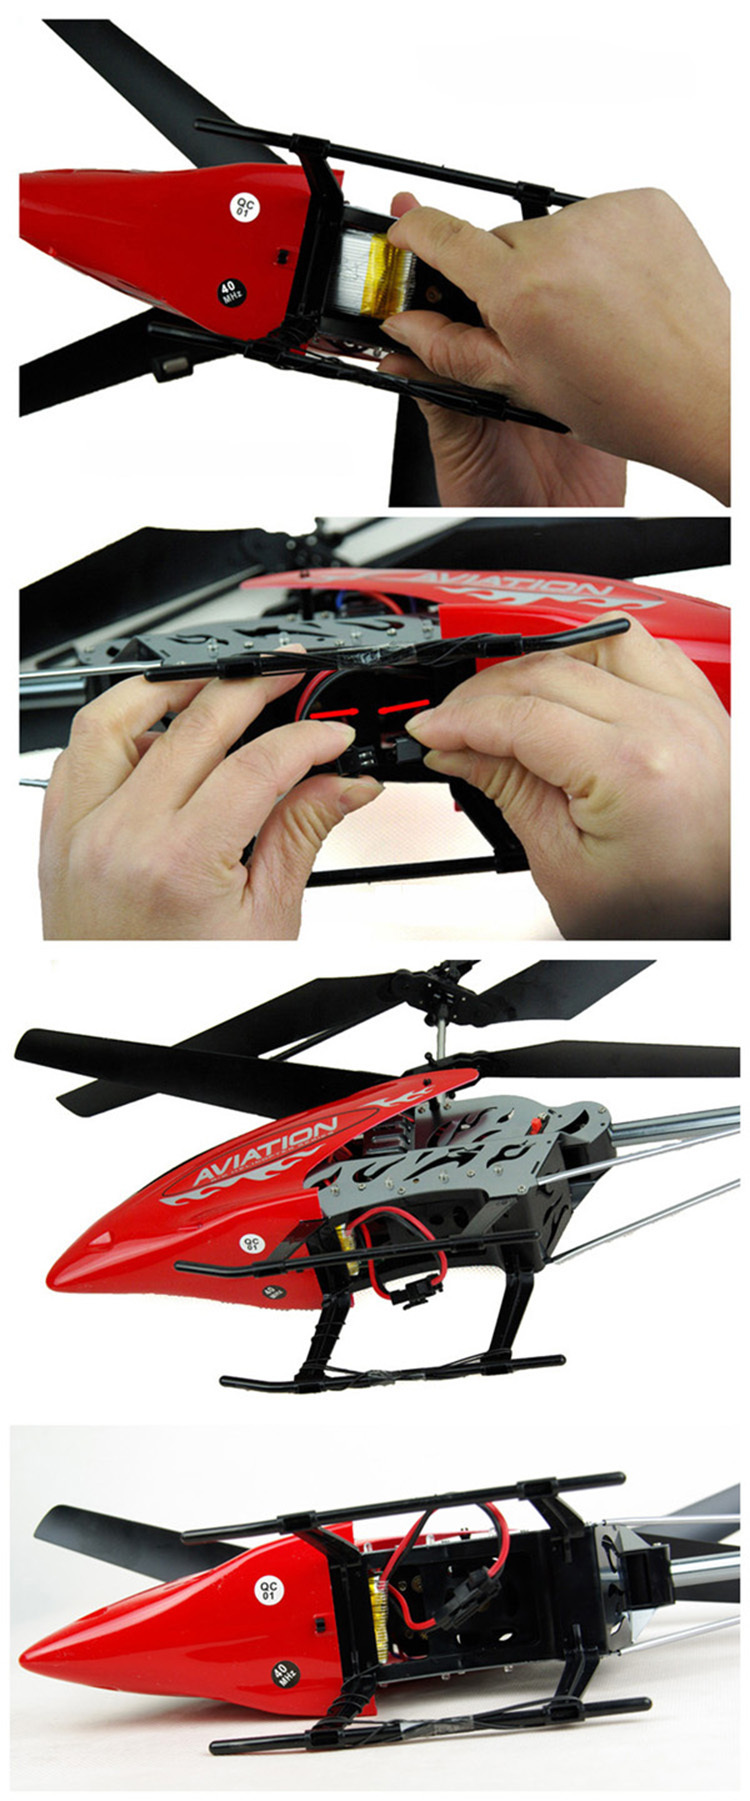 LH-1206 Hot selling 3.5 channel Radio Control Helicopter with Gyro helicopter airplane professional uav toys for adult